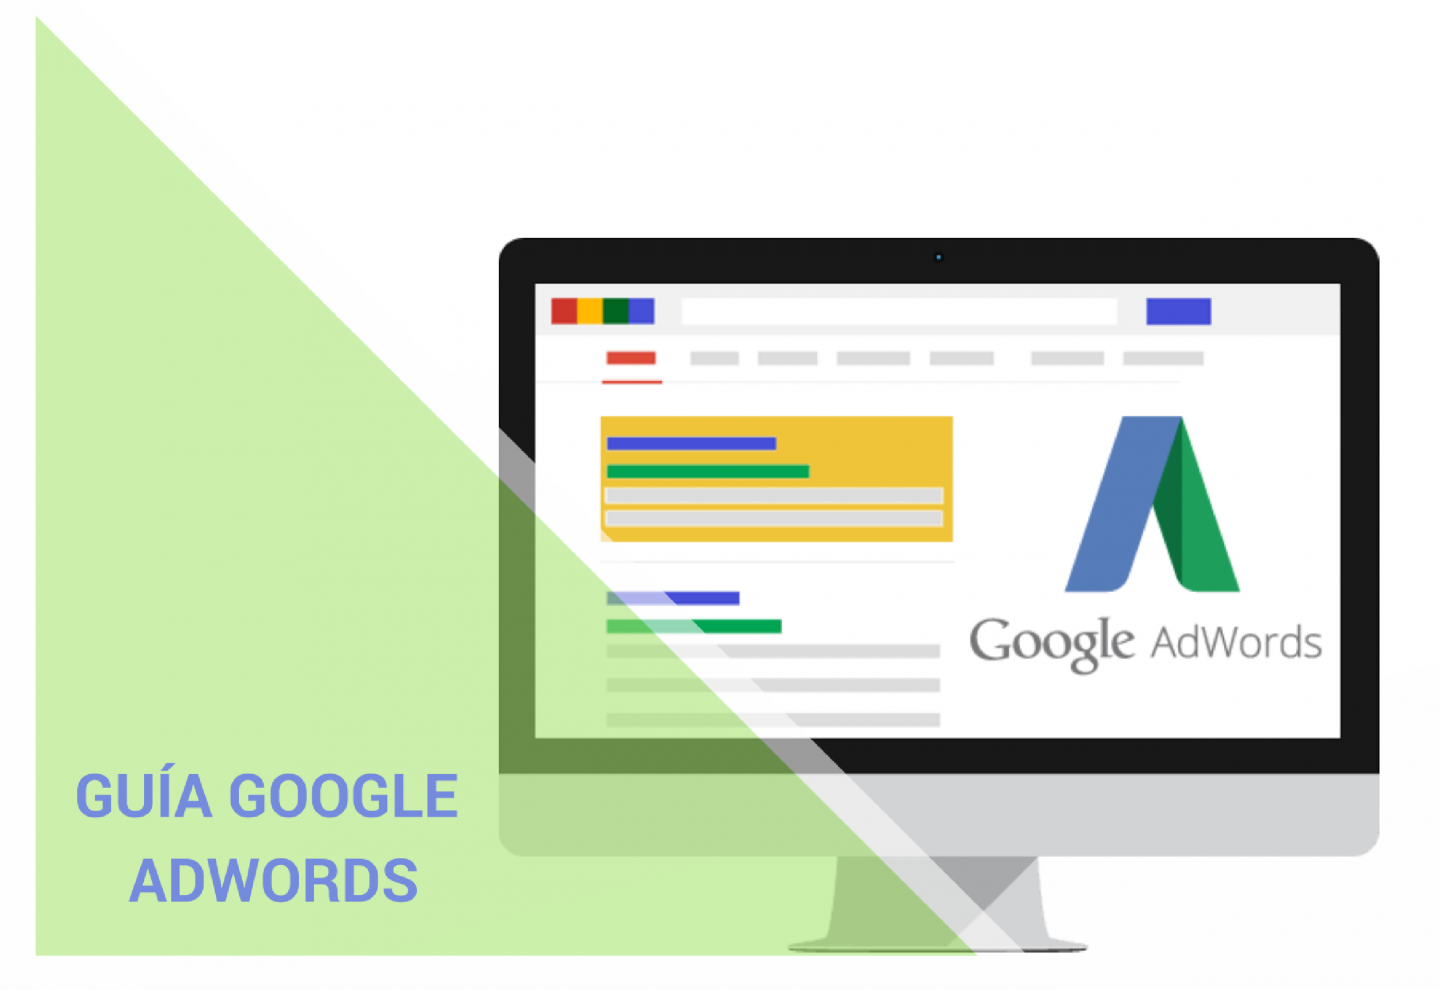 Guia Google AdWords